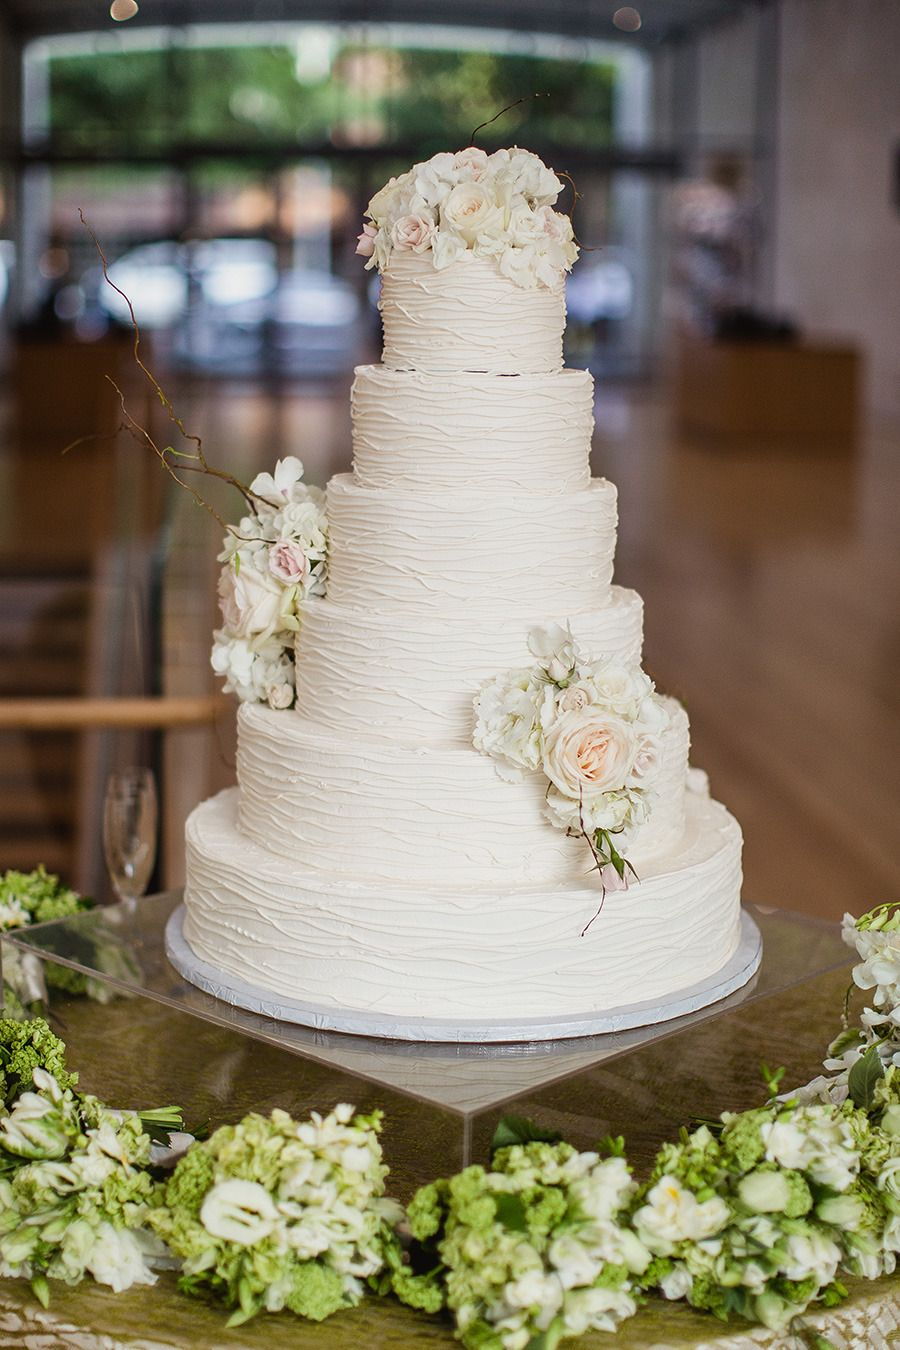 Can't get enough of this cake! Especially love the flowers by Bella Flora of Dallas. #bflive #weddings www.bellafloraofdallas.com Read More: http://www.stylemepretty.com/2013/11/19/dallas-wedding-from-shaun-menary-photography-caroline-events/